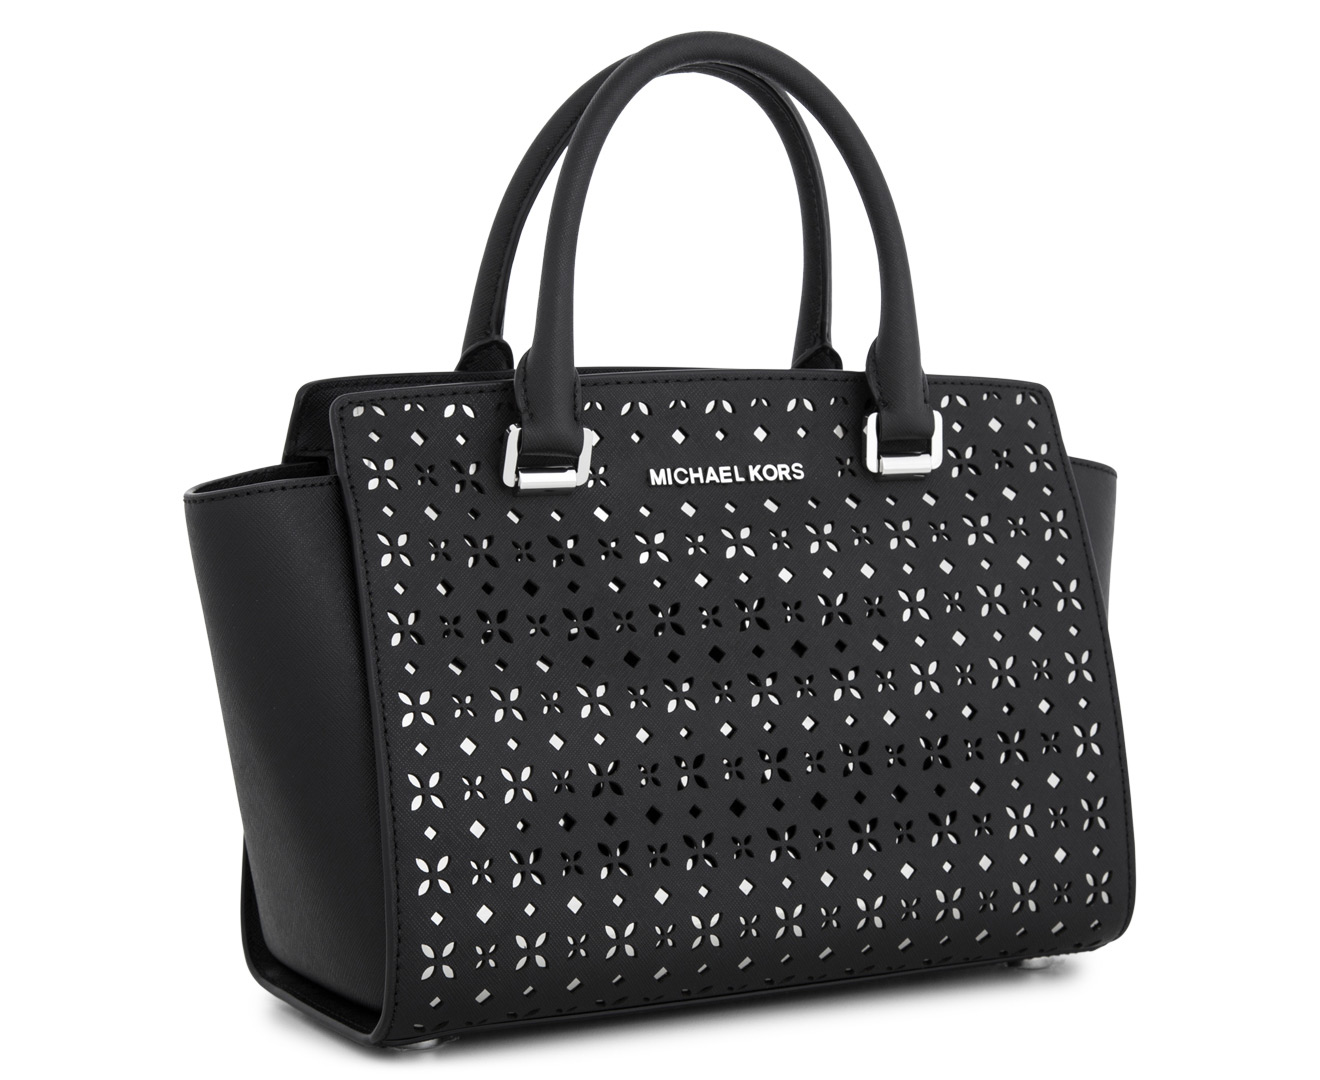 4a2a7dbd7db1 Michael Kors Selma Floral Perforated Medium Leather Satchel - Black Nickel